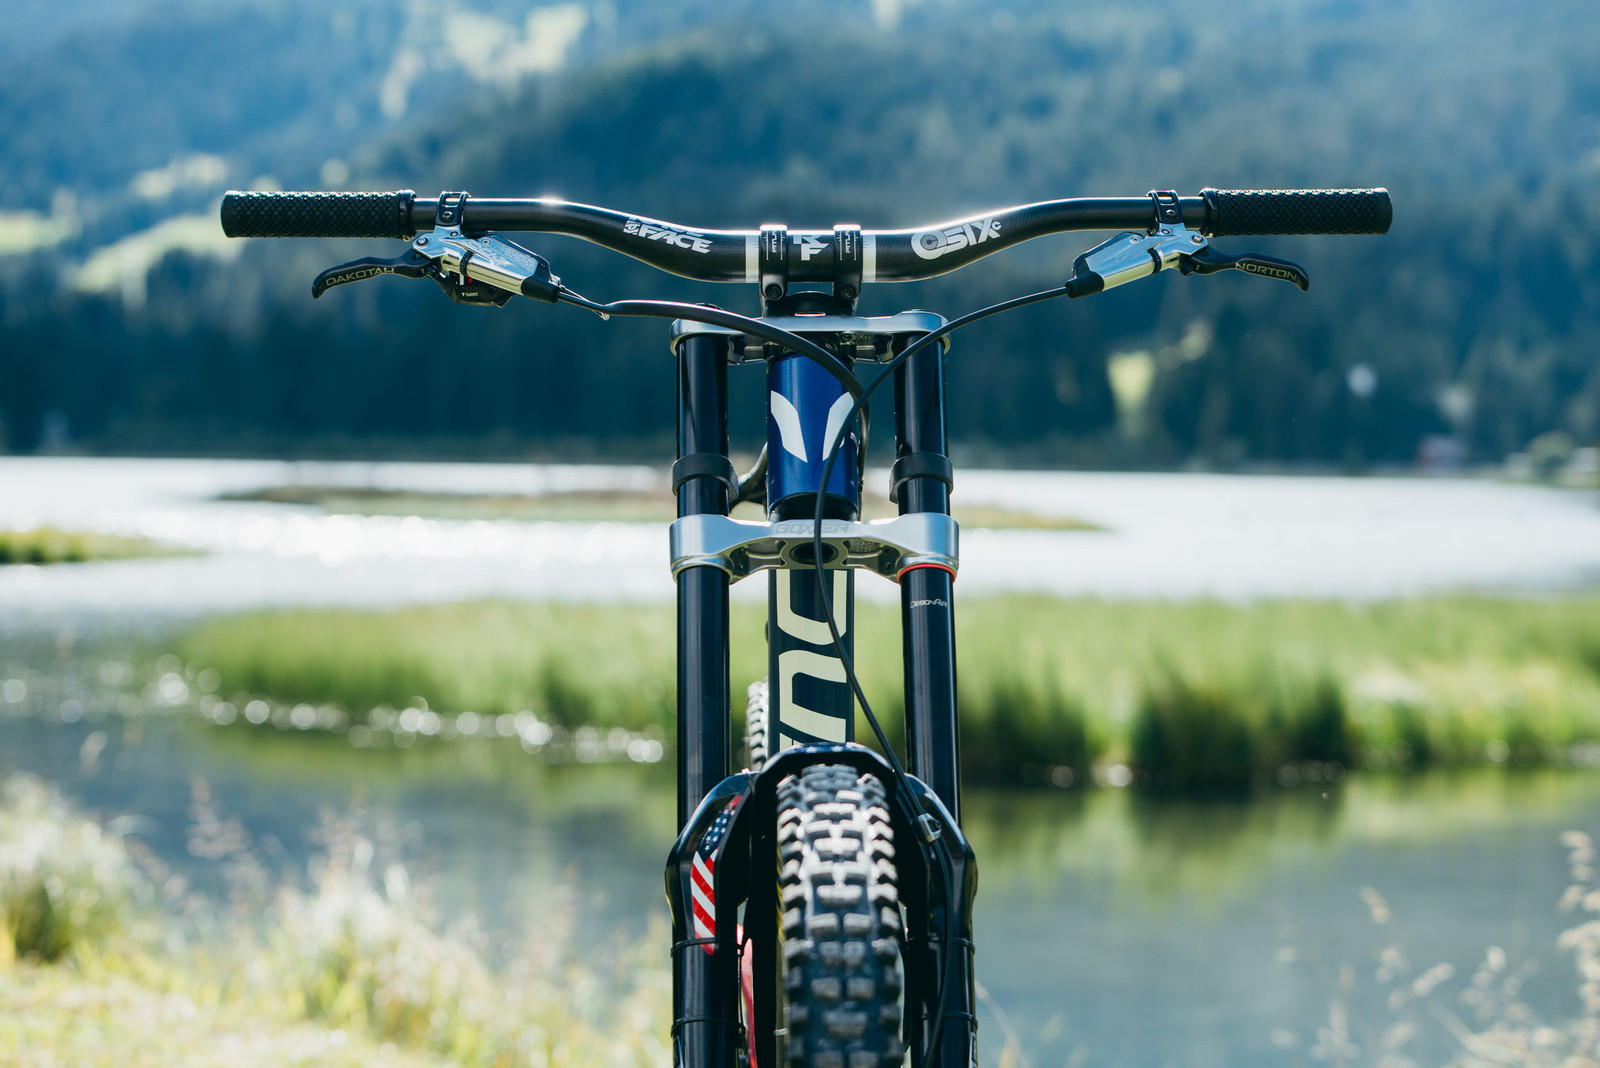 Looking Tidy - WORLD CHAMPS BIKES - Unior/Devinci Factory Racing - Mountain Biking Pictures - Vital MTB